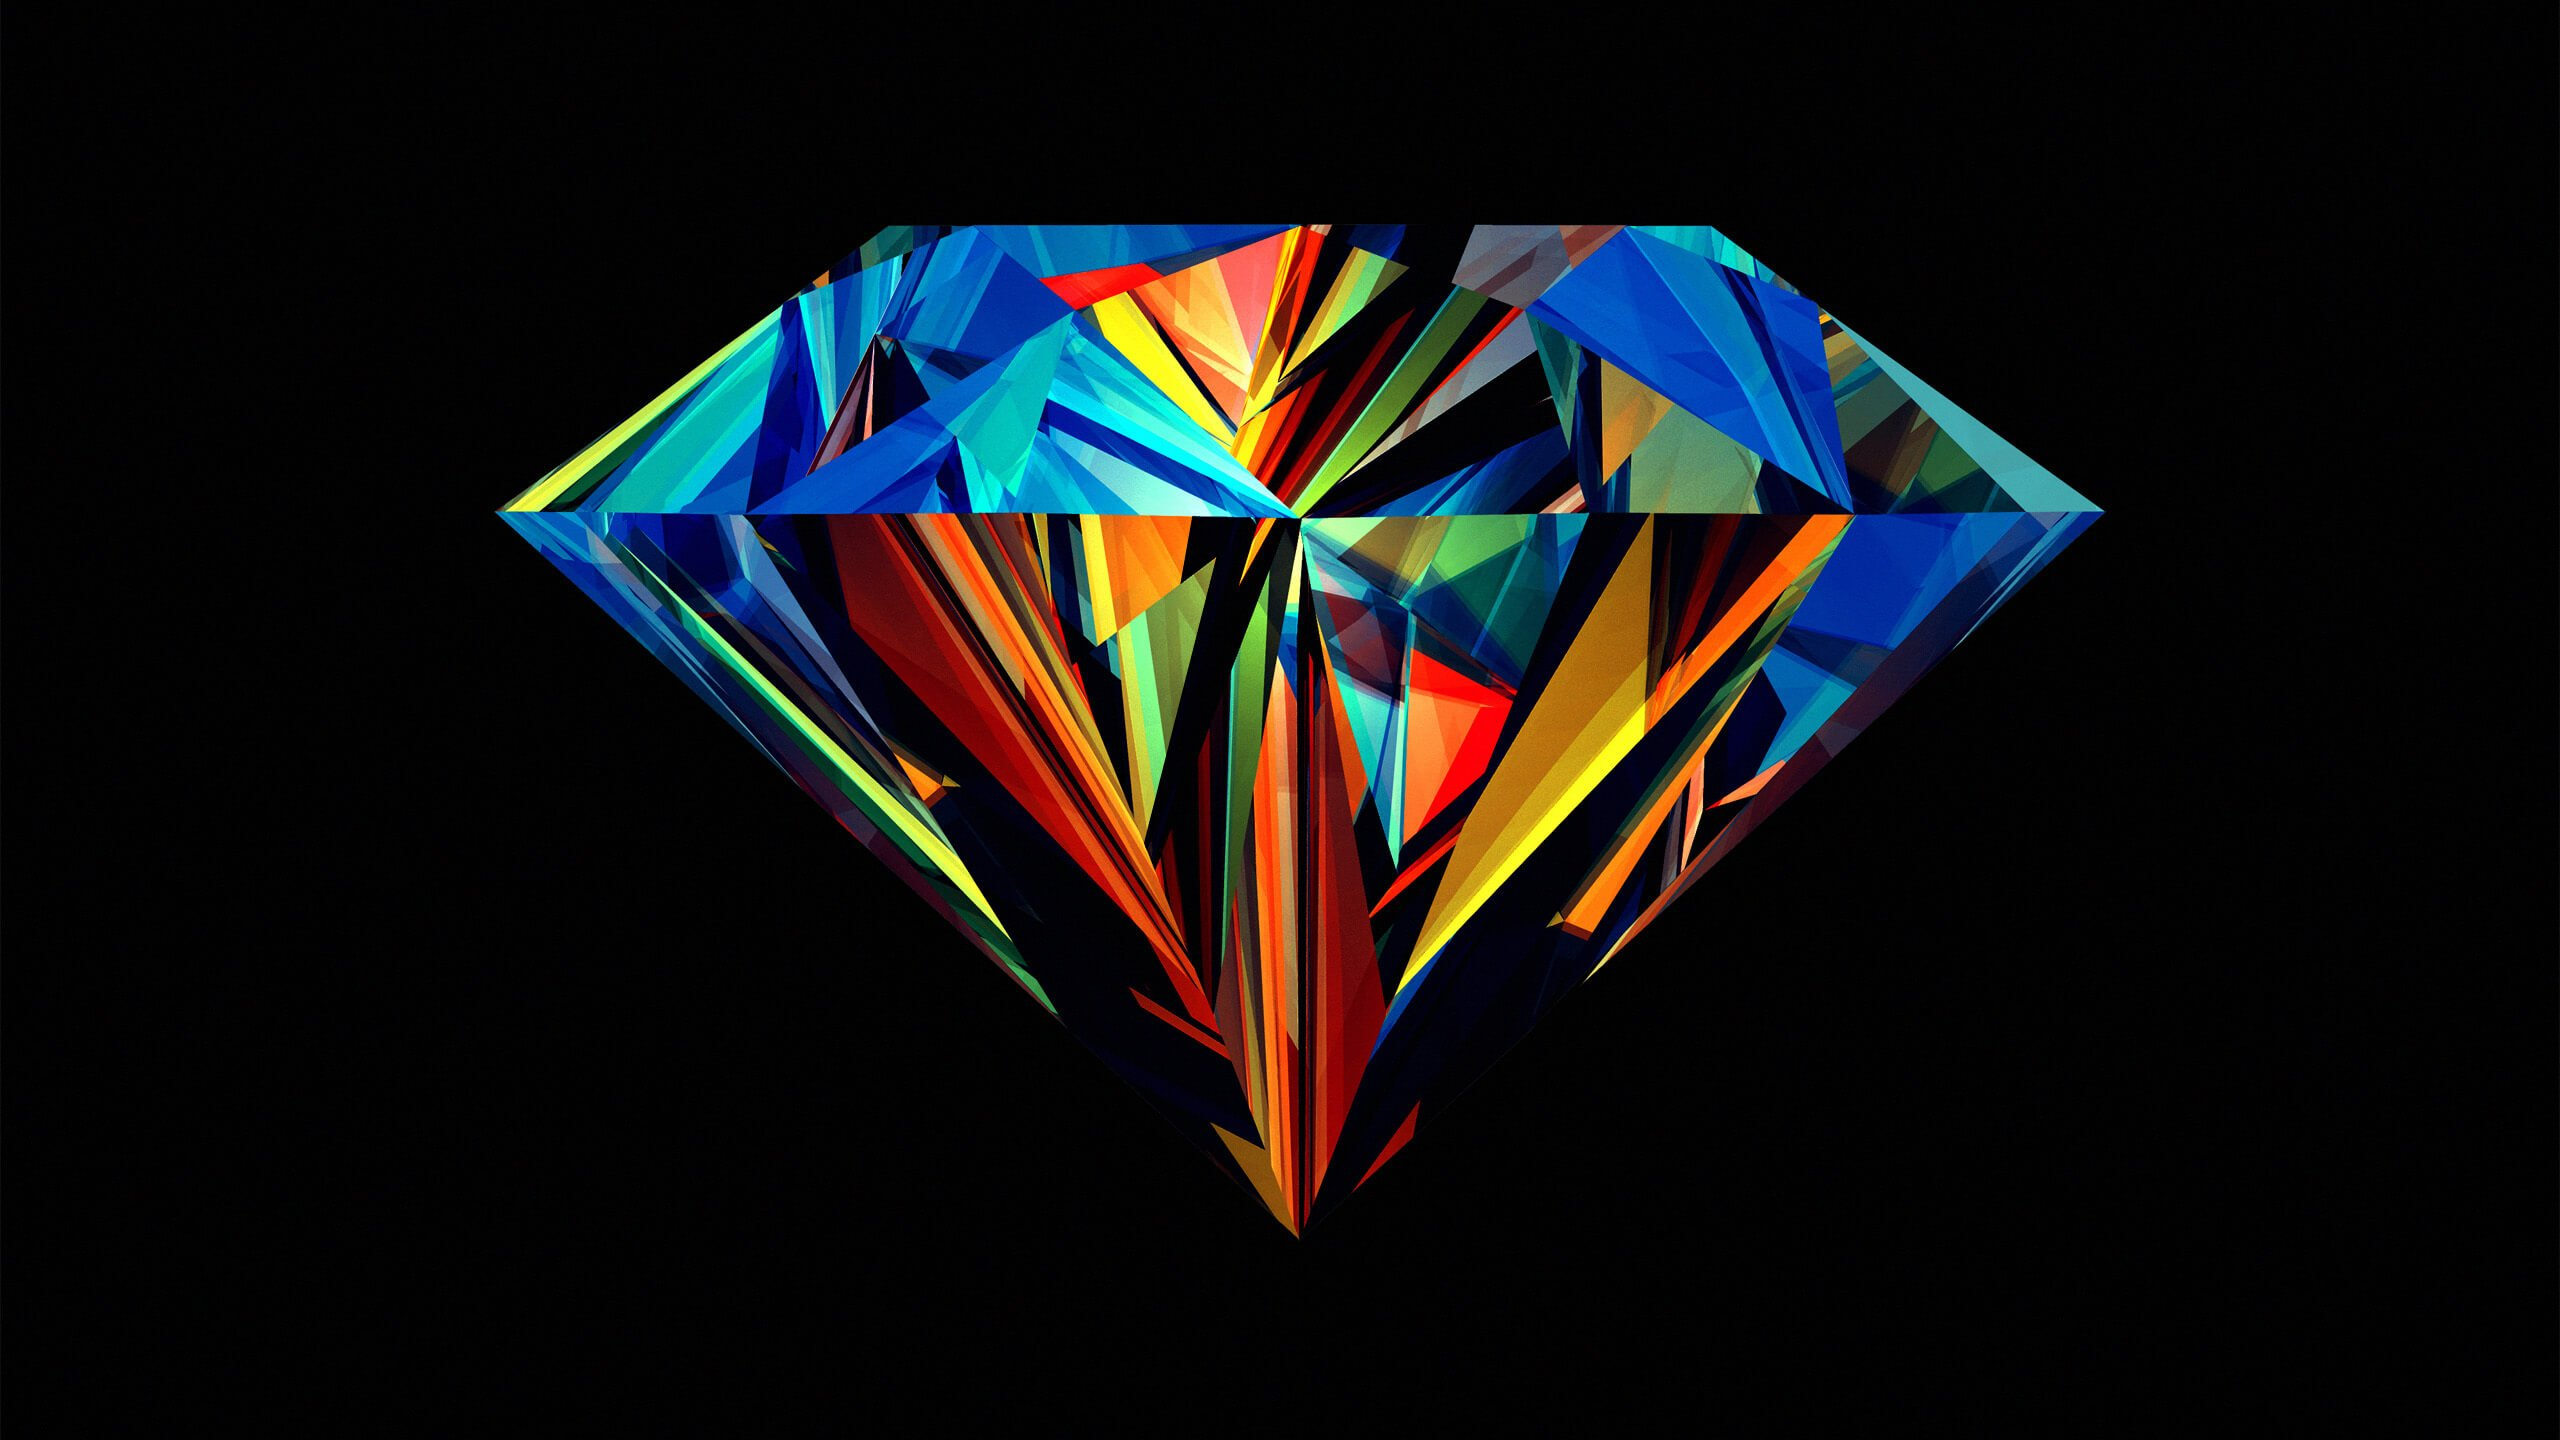 Colorful Diamond Wallpaper for Desktop 2560x1440